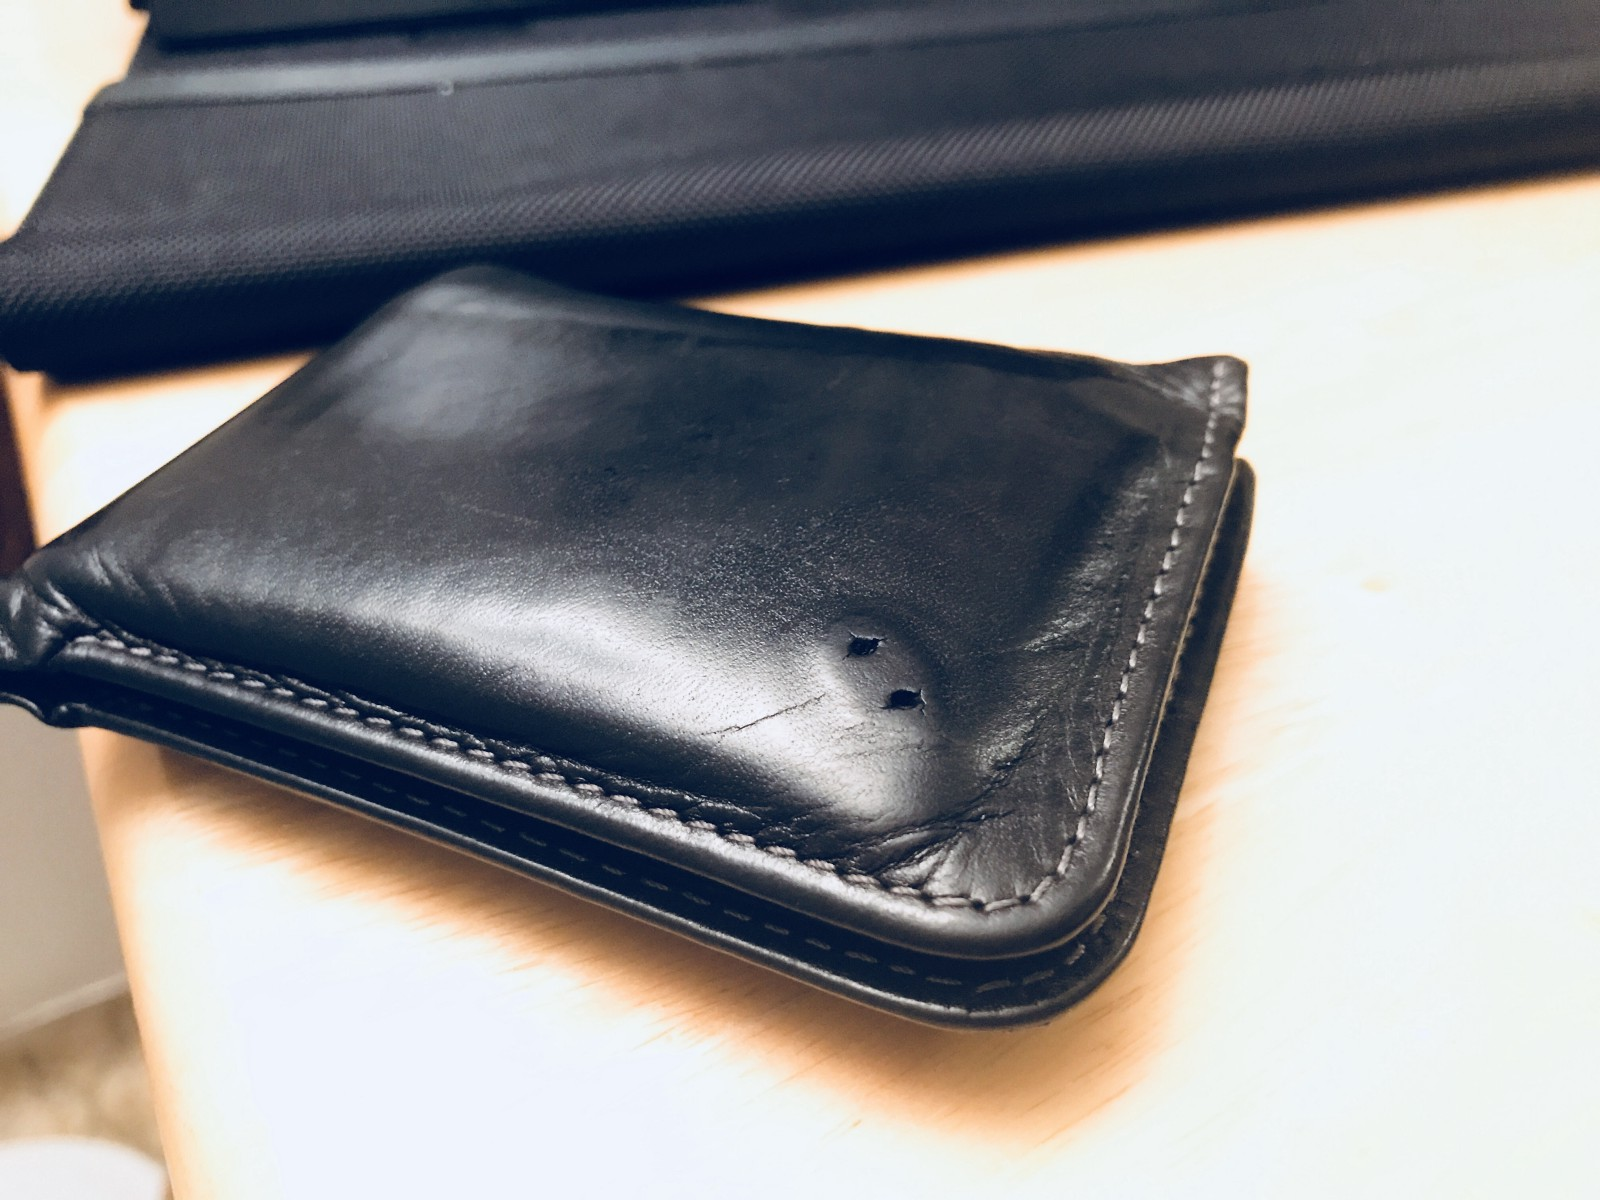 The wallet logo was missing. It's likely because it got caught in the pockets very often.